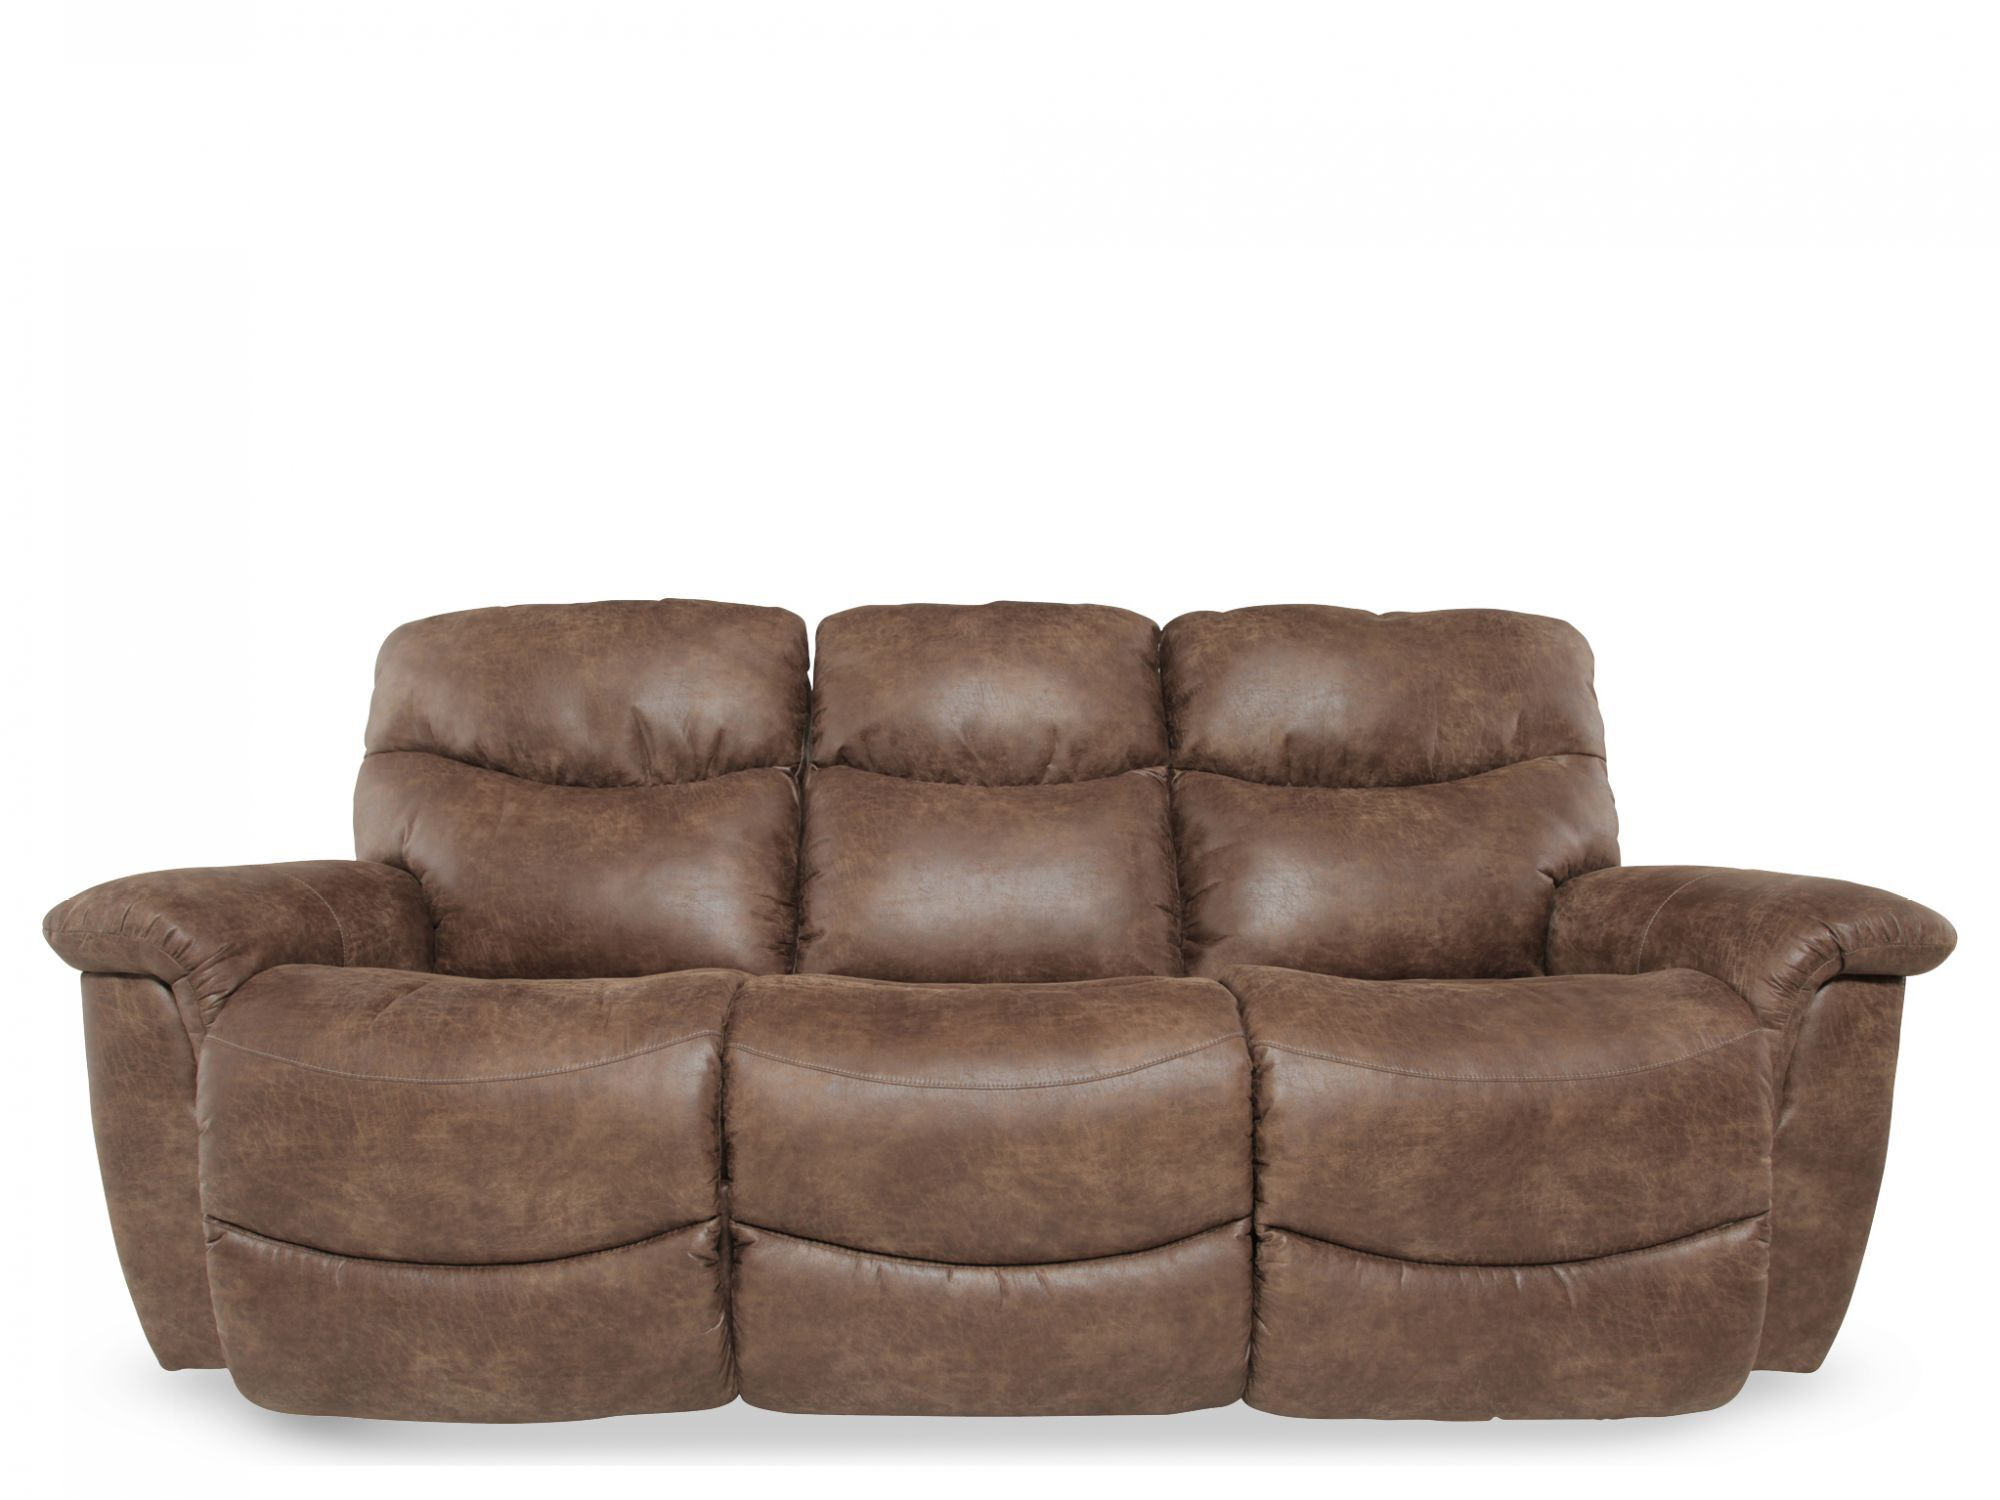 La Z Boy James Silt Performance Leather Power Sofa Mathis Brothers Furniture